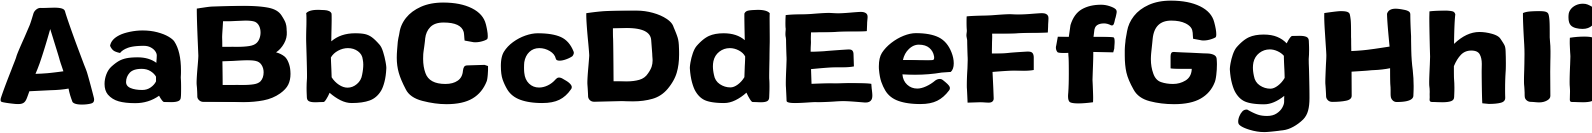 Colby Extended Bold Font